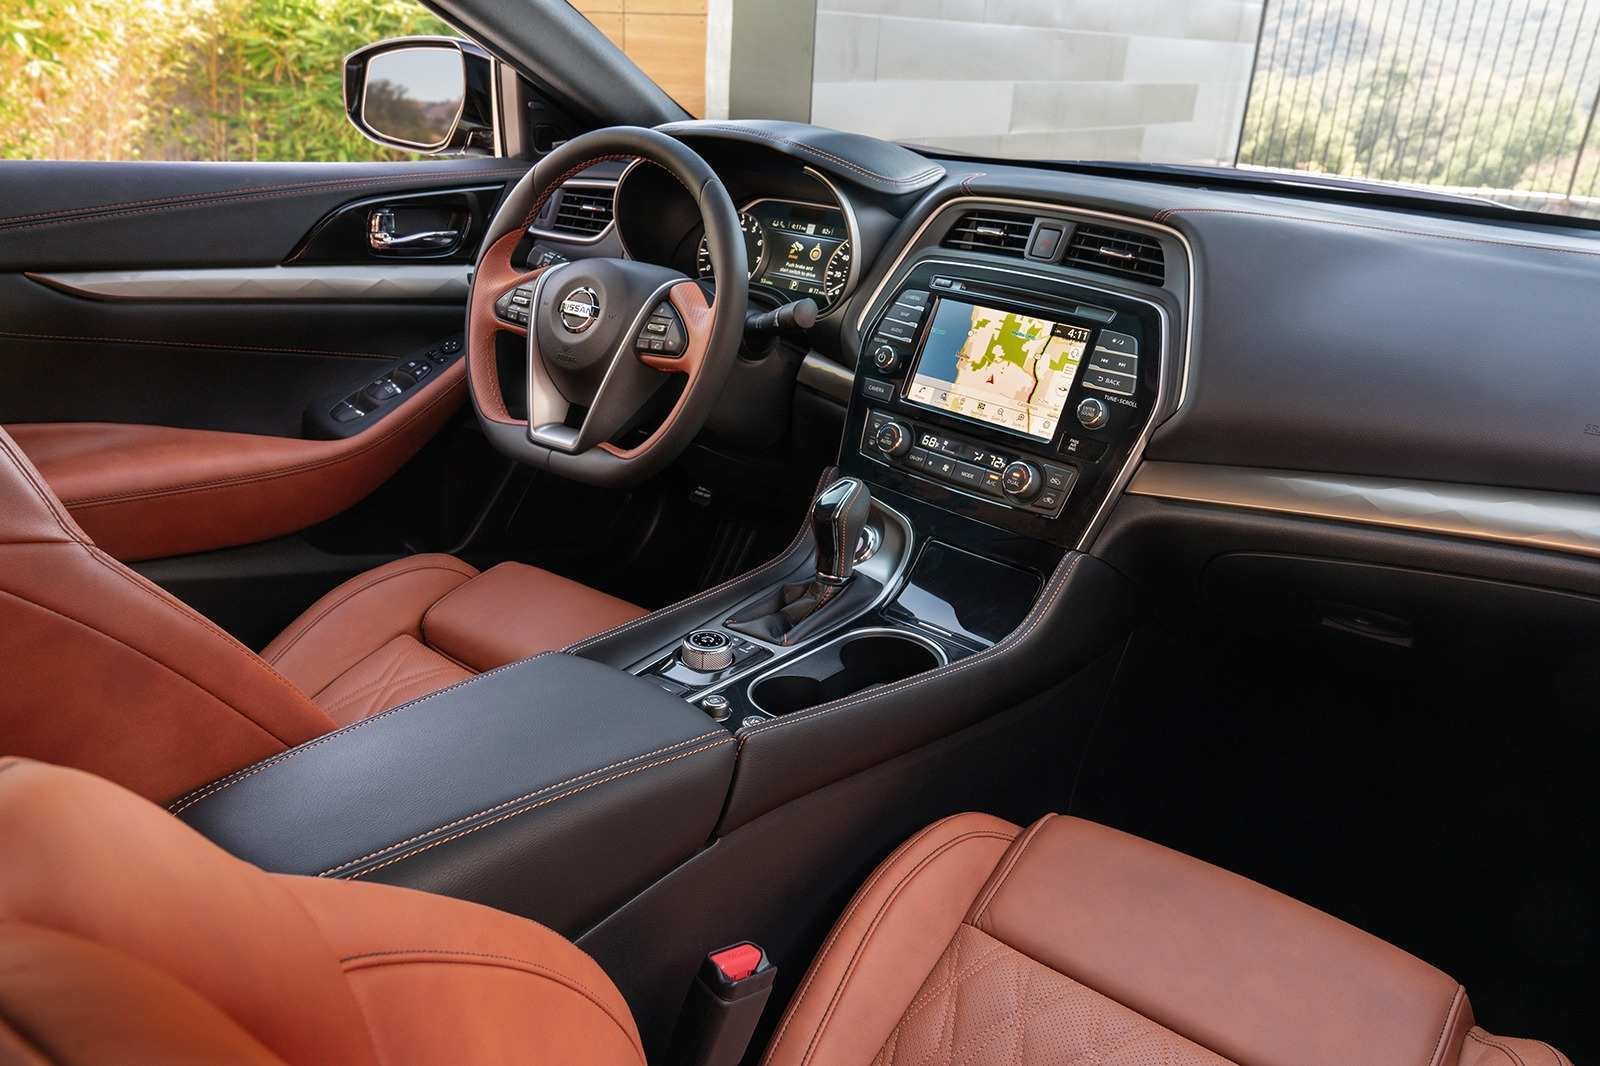 81 All New 2019 Nissan Maxima Horsepower Specs And Review